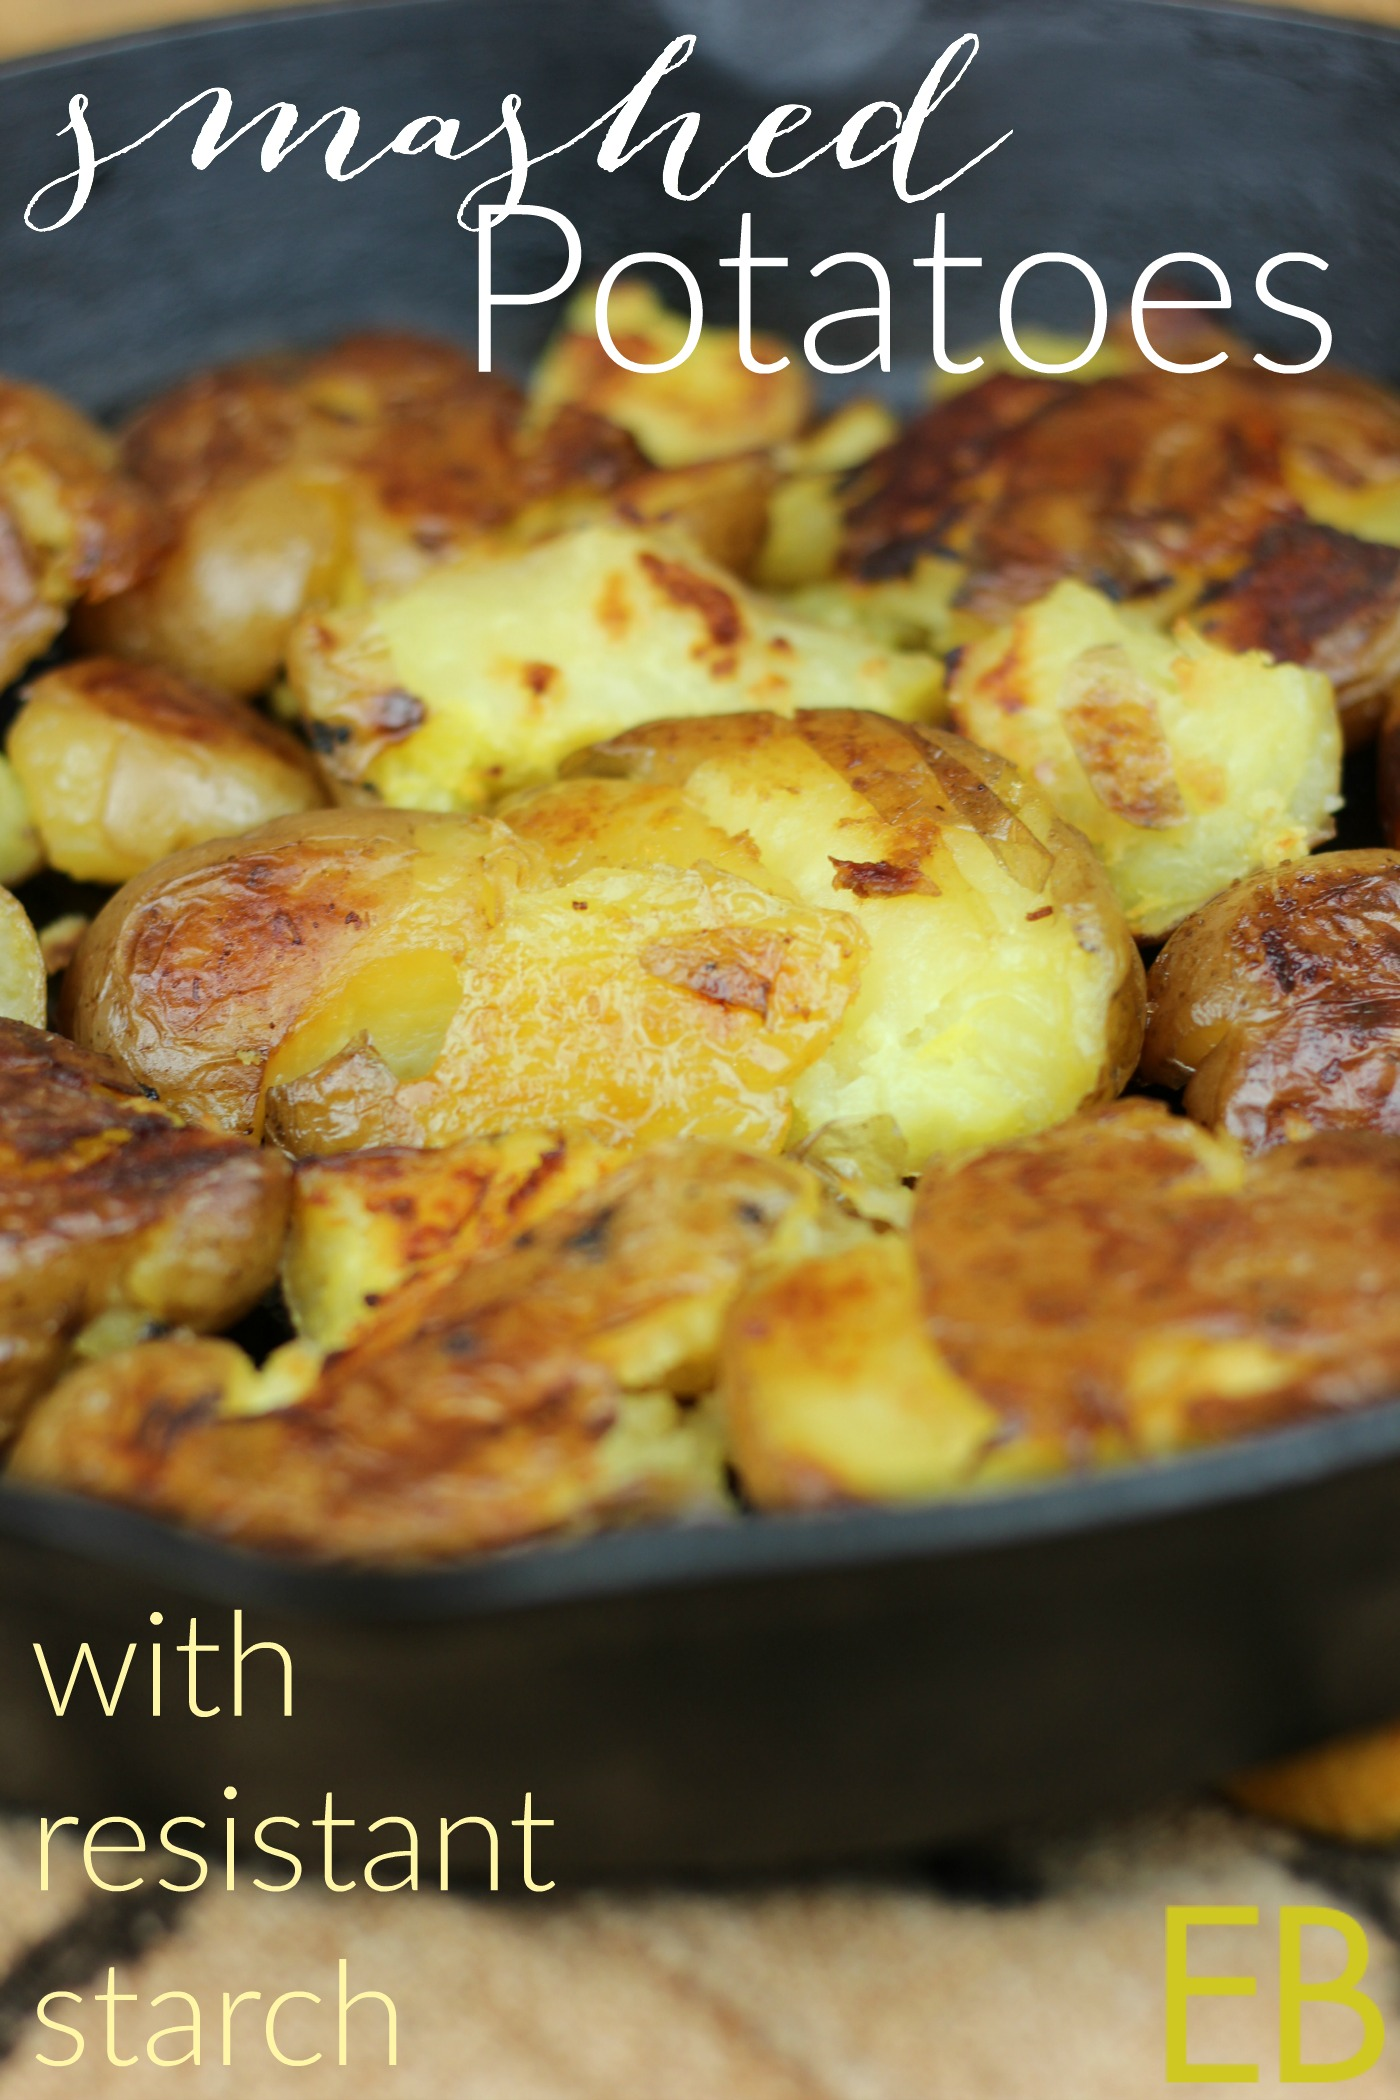 smashed-potatoes-with-resistant-starch